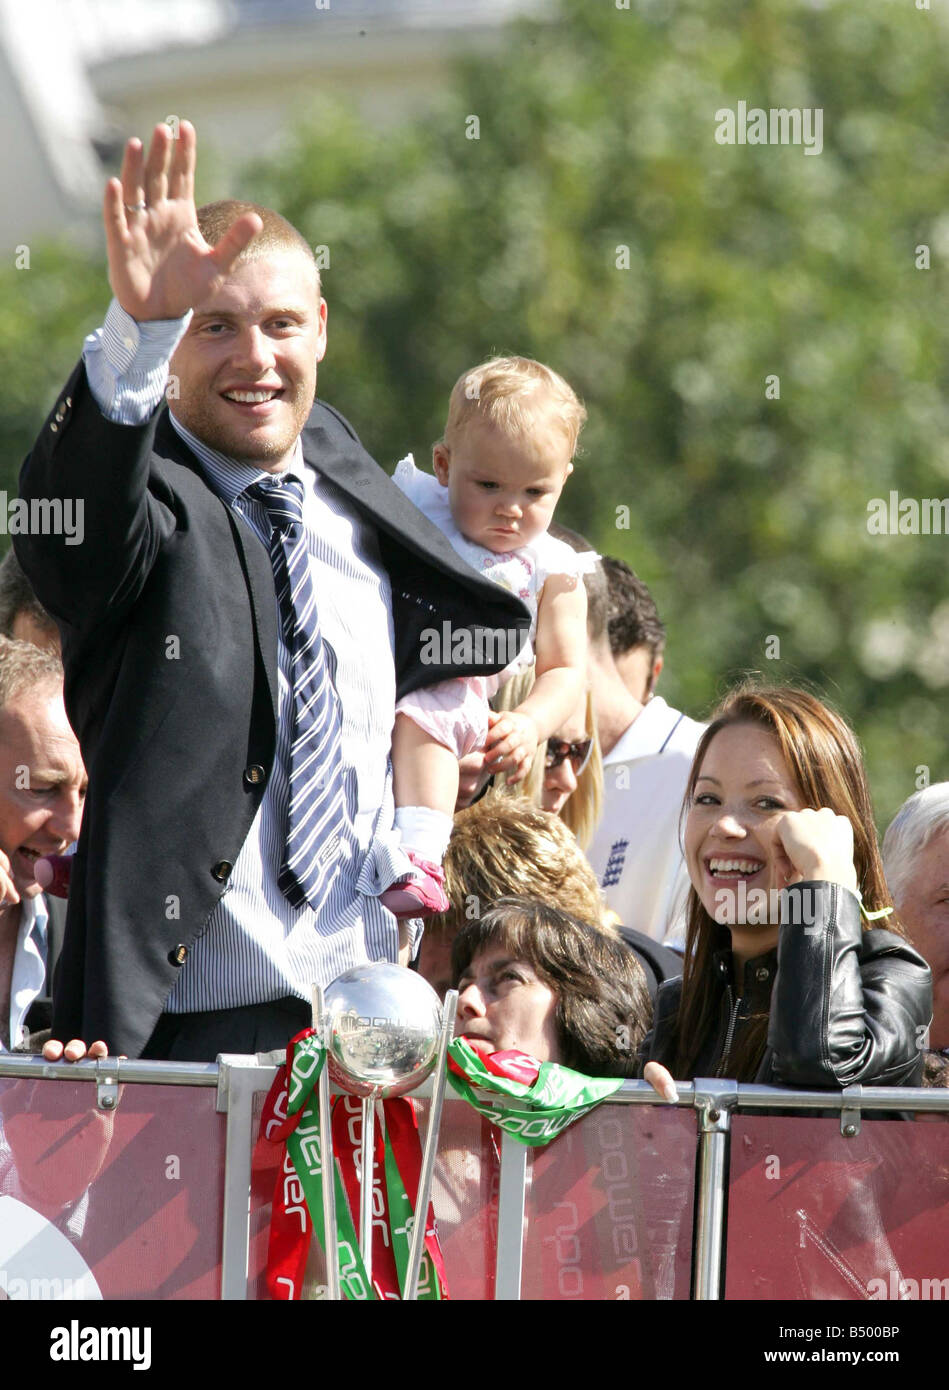 Andrew Flintoff with his baby daughter and his wife Rachel on the bus during England celebrations after winning - Stock Image